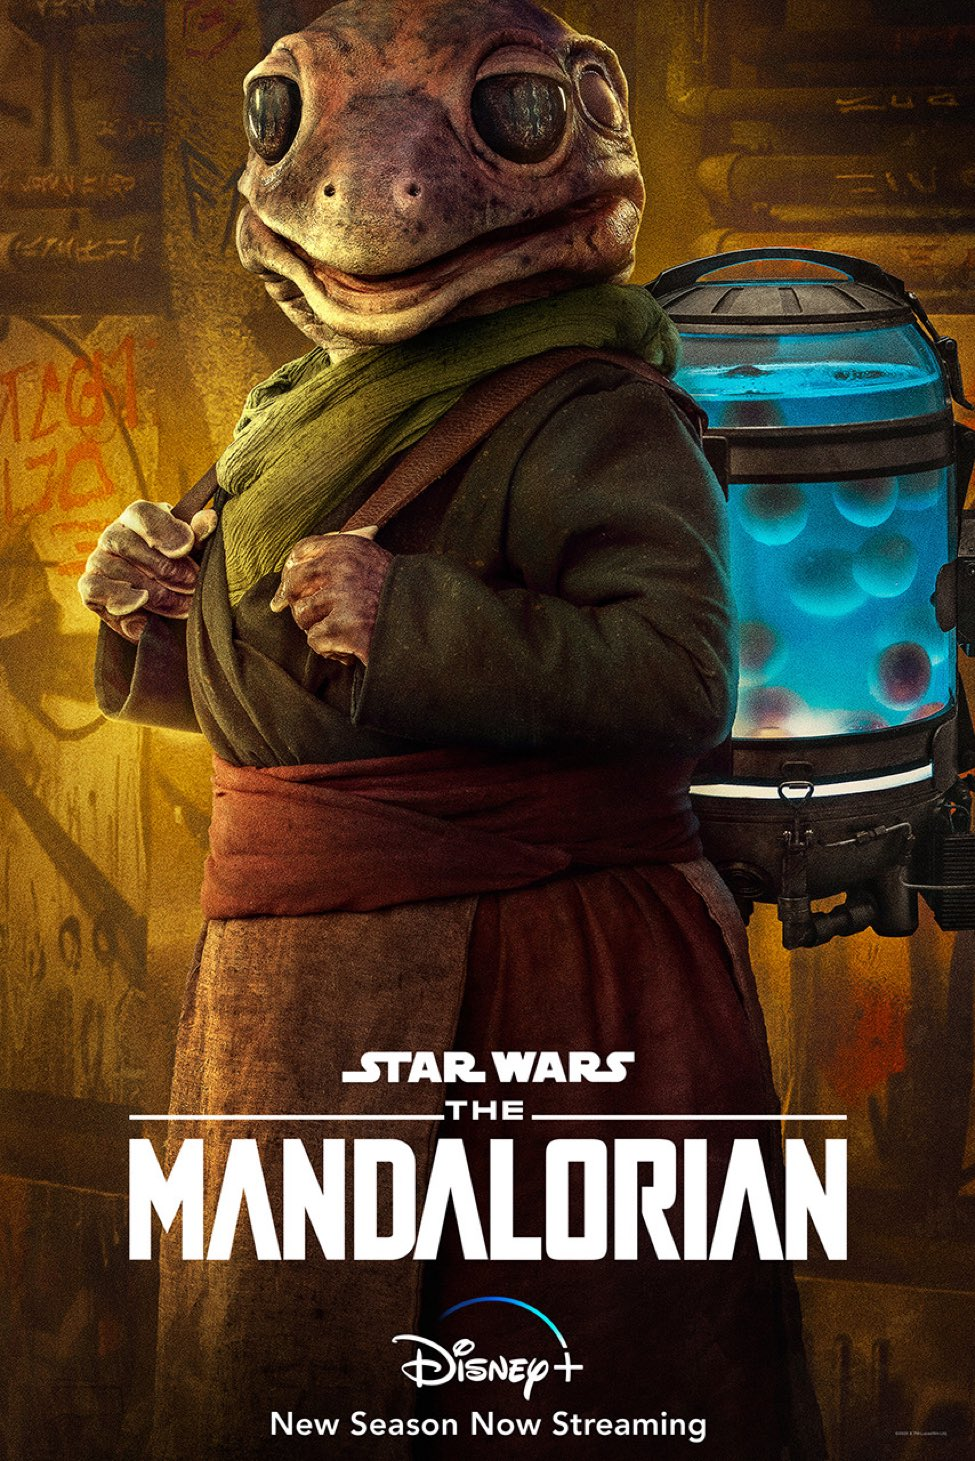 The-Mandalorian-Season-2-Frog-Lady-Character-Poster